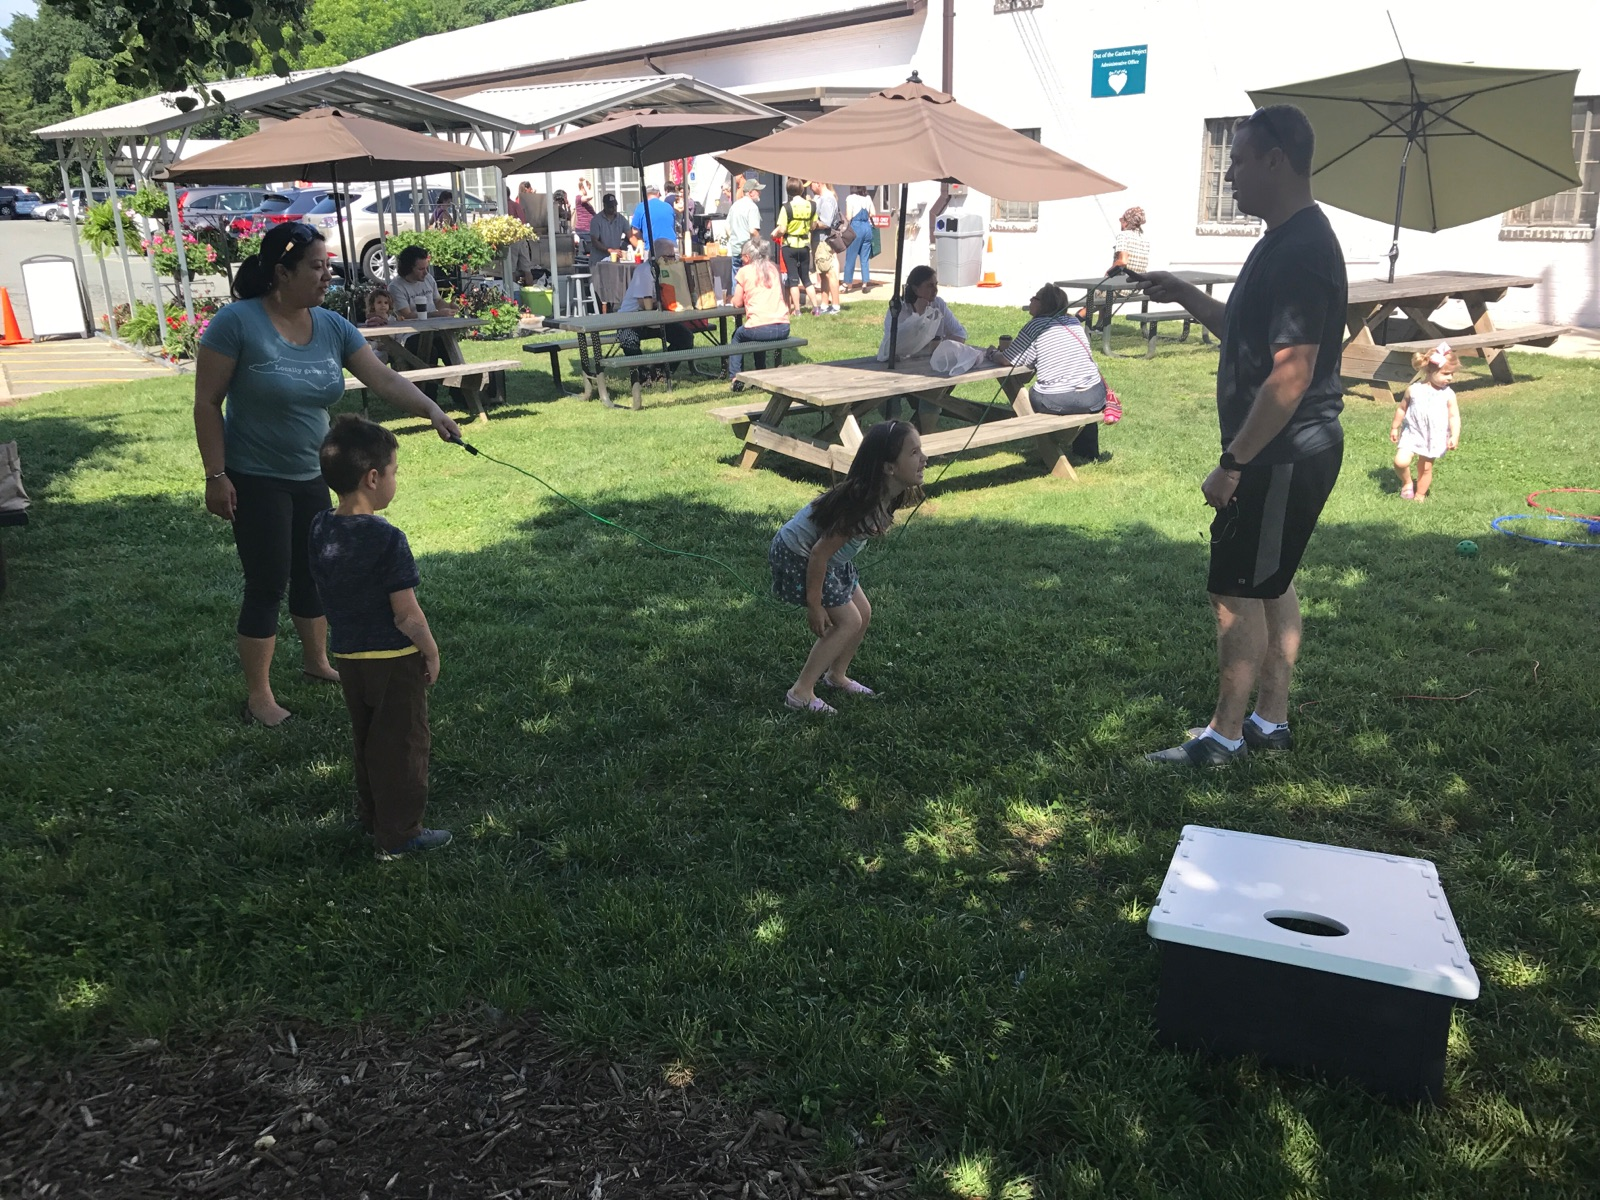 Children's Summer Activities:  Kids Corner on the Lawn